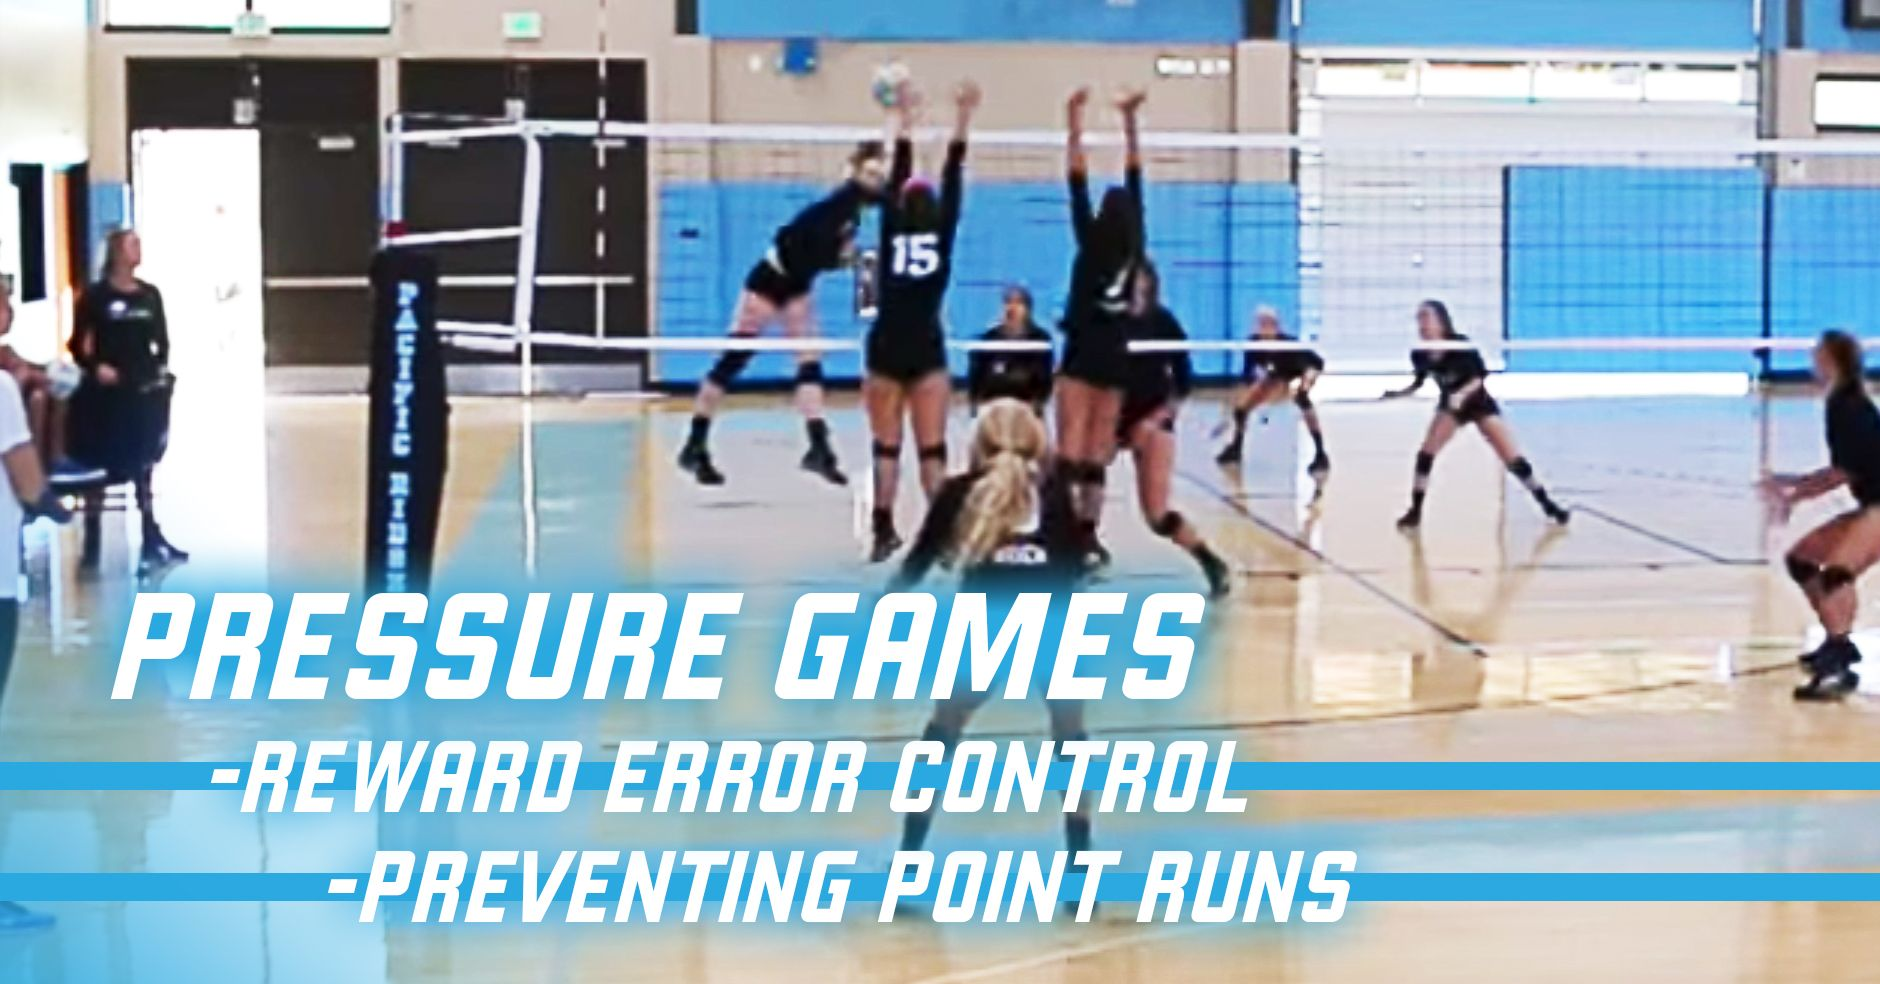 2 Games That Reward Error Control And Prevent Point Runs The Art Of Coaching Volleyball Volleyball Workouts Volleyball Training Volleyball Drills